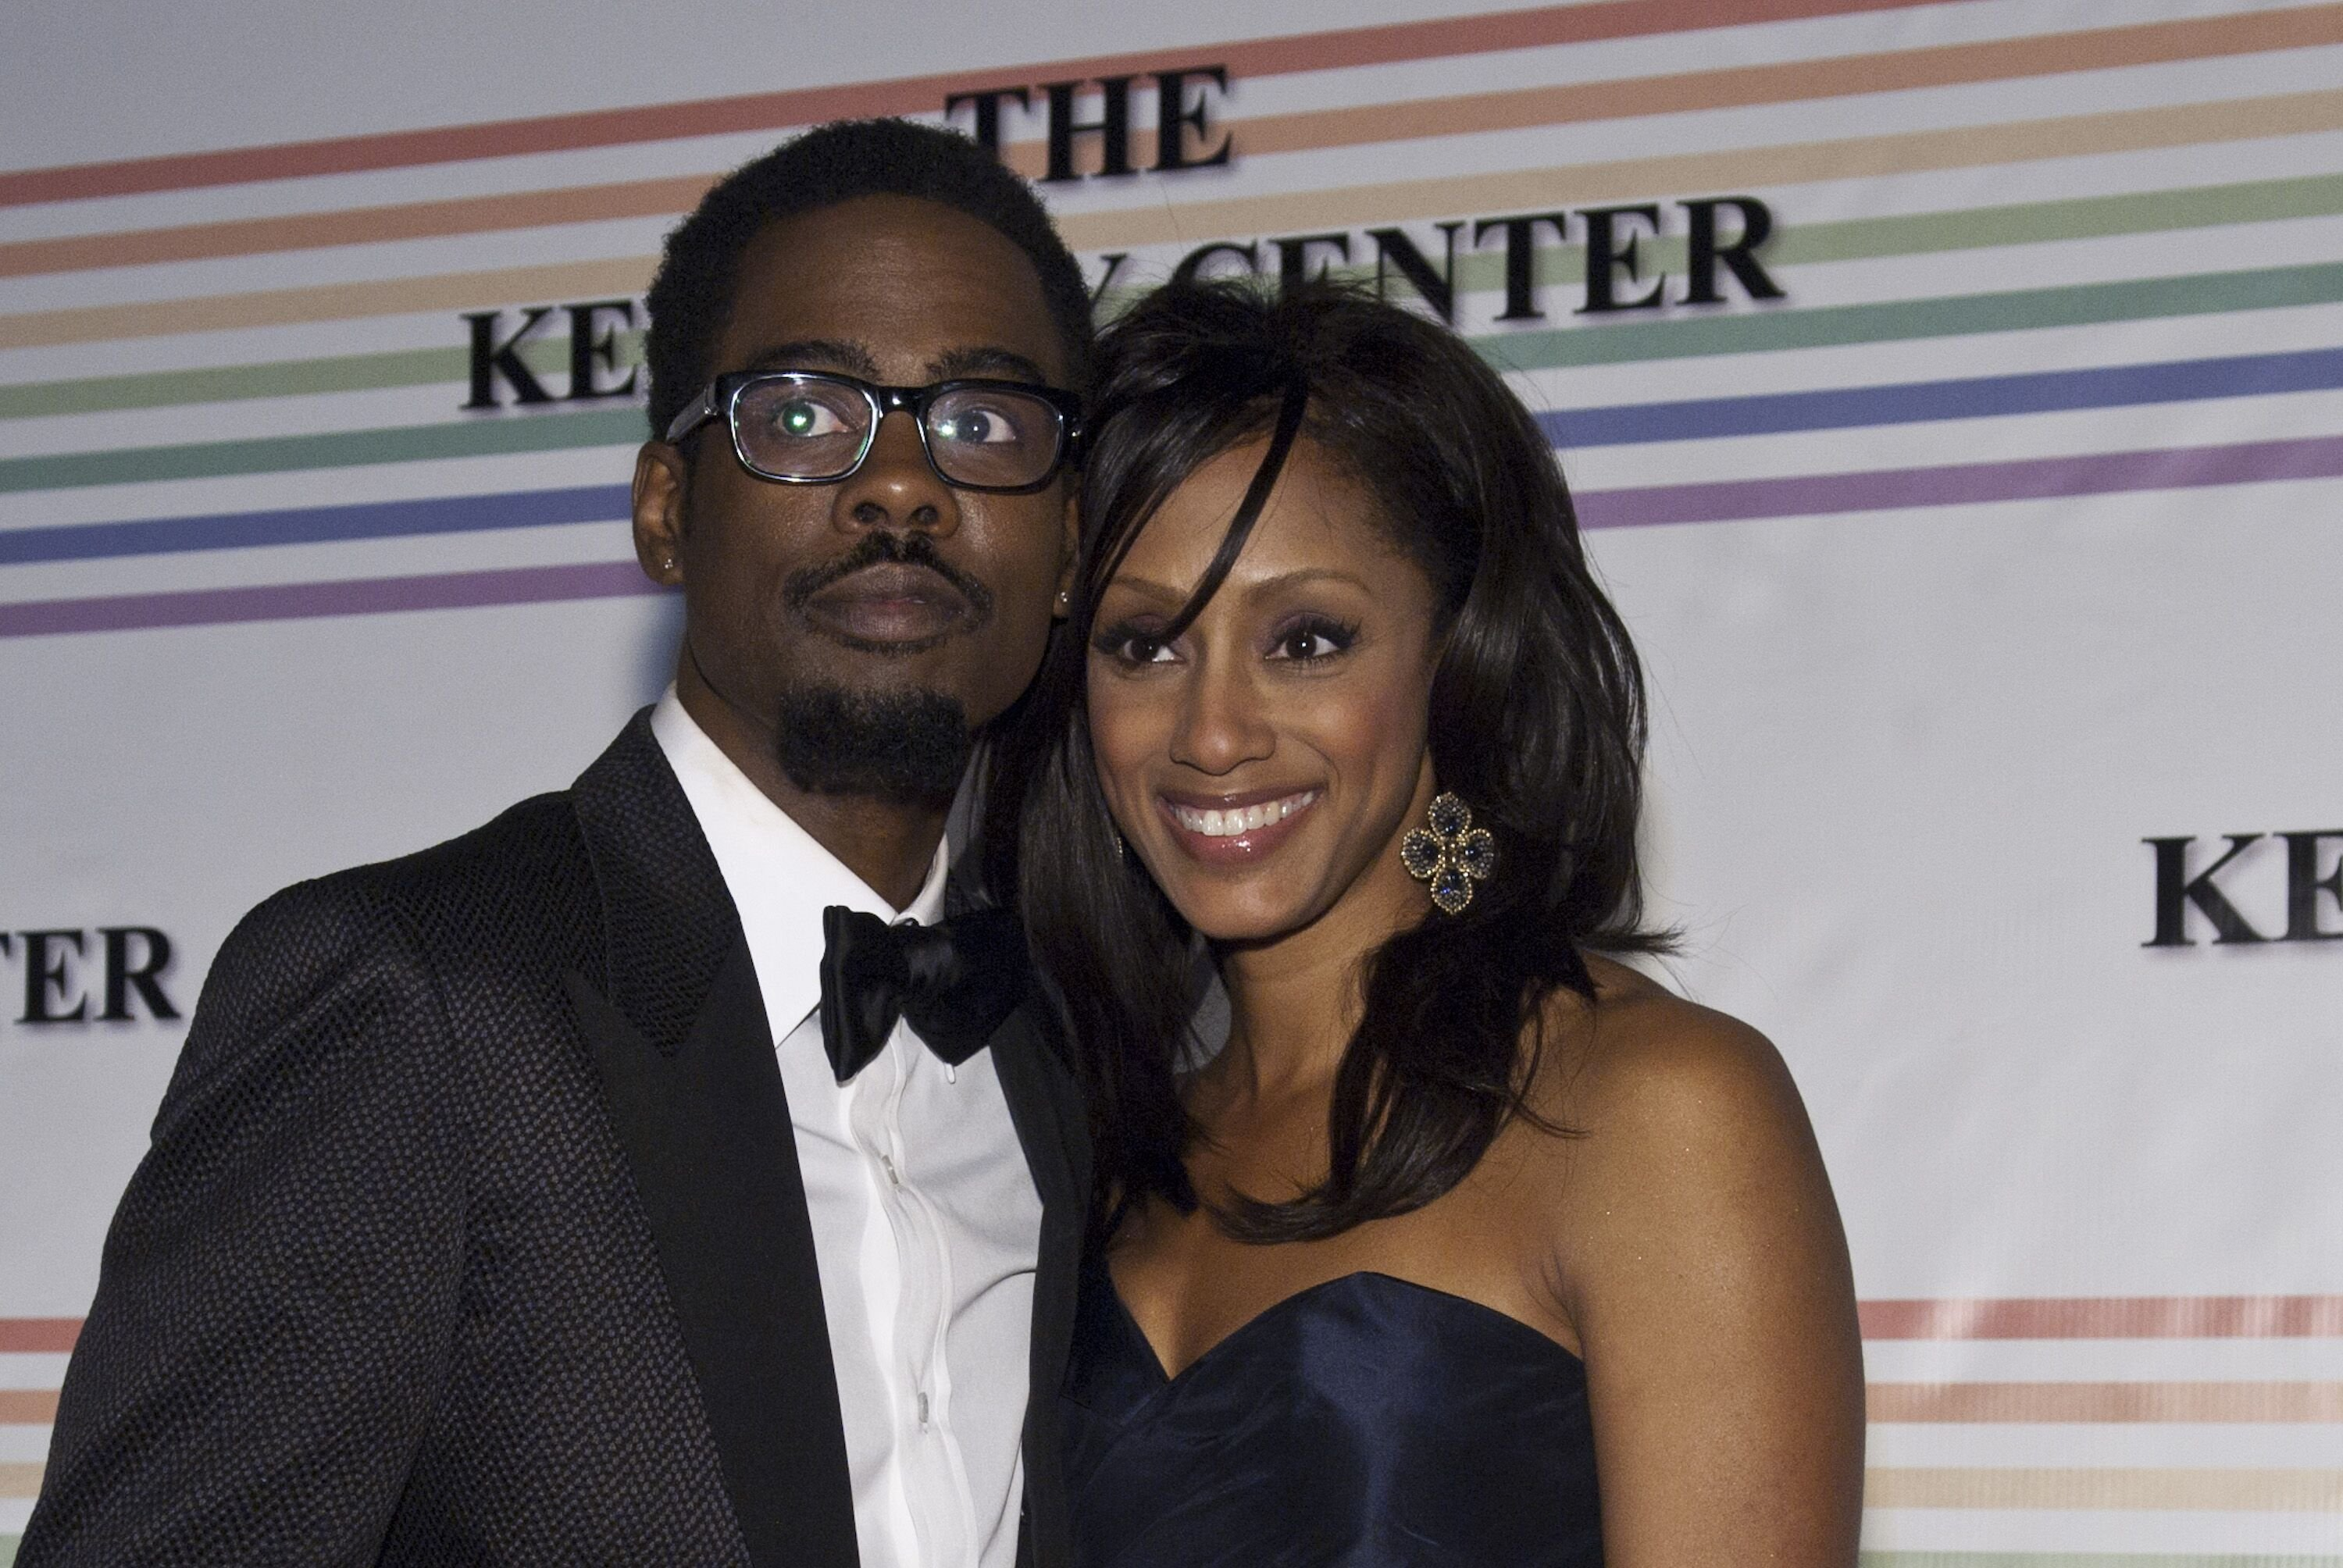 Chris Rock and Malaak Rock at the 33rd Annual Kennedy Center Honors on December 5, 2010 | Photo: Getty Images